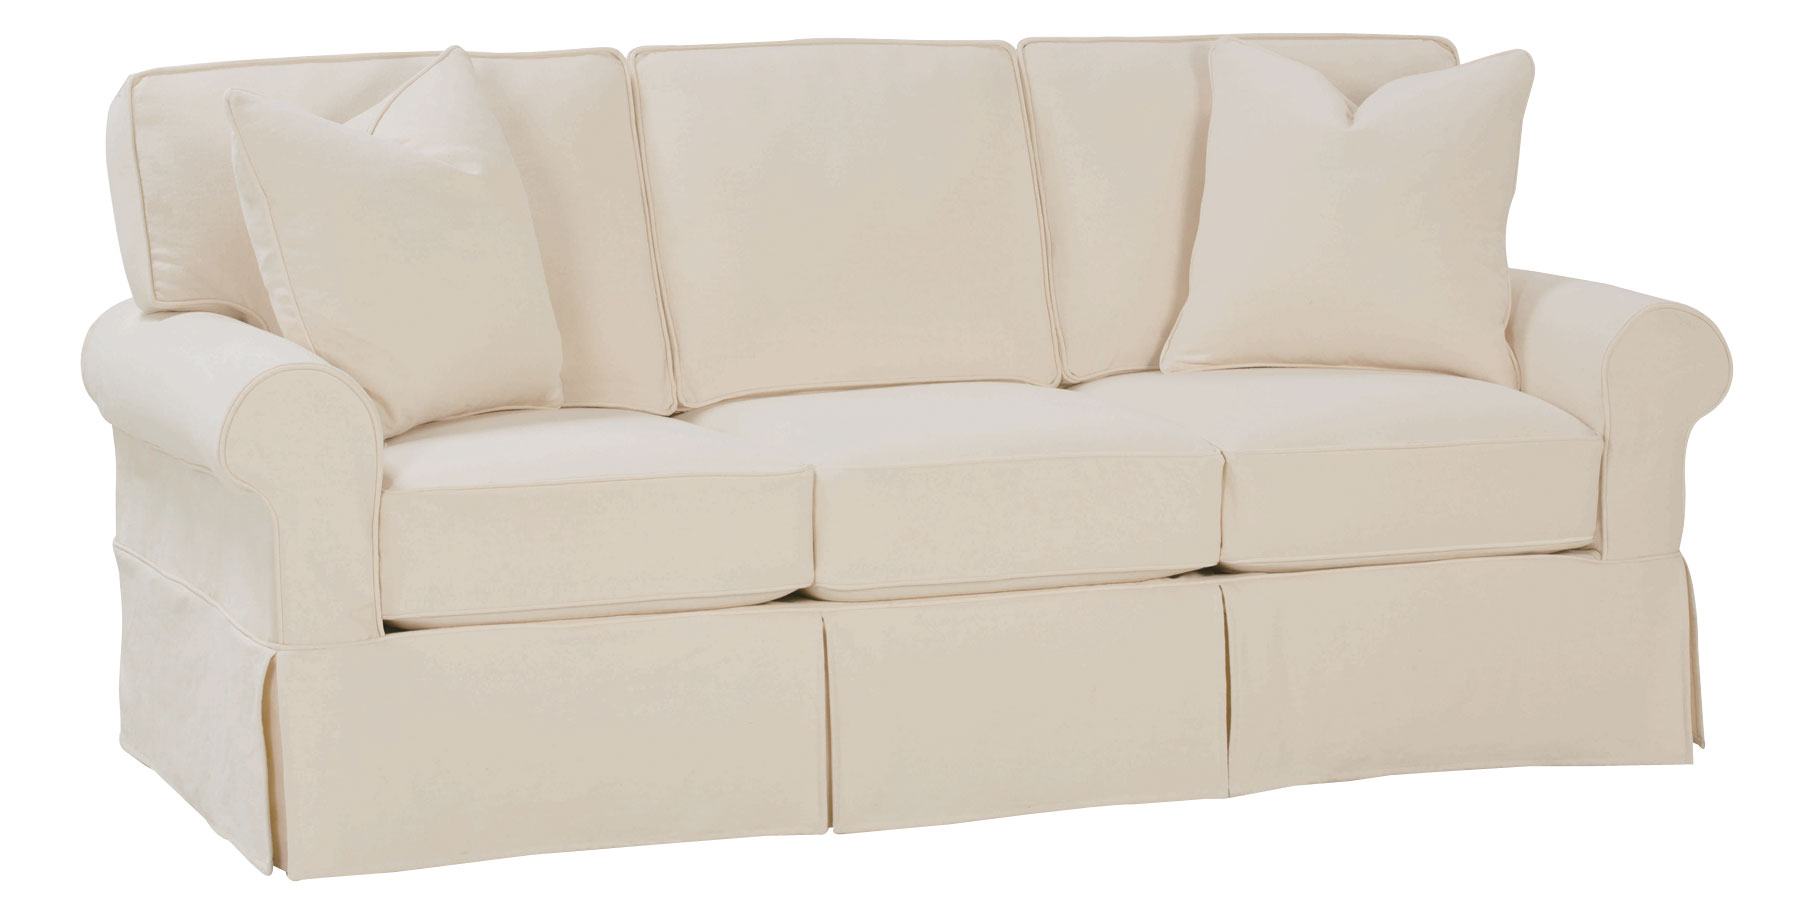 Christine Quick Ship Slipcovered Sofa Collection Quick Ship Sofa Collections